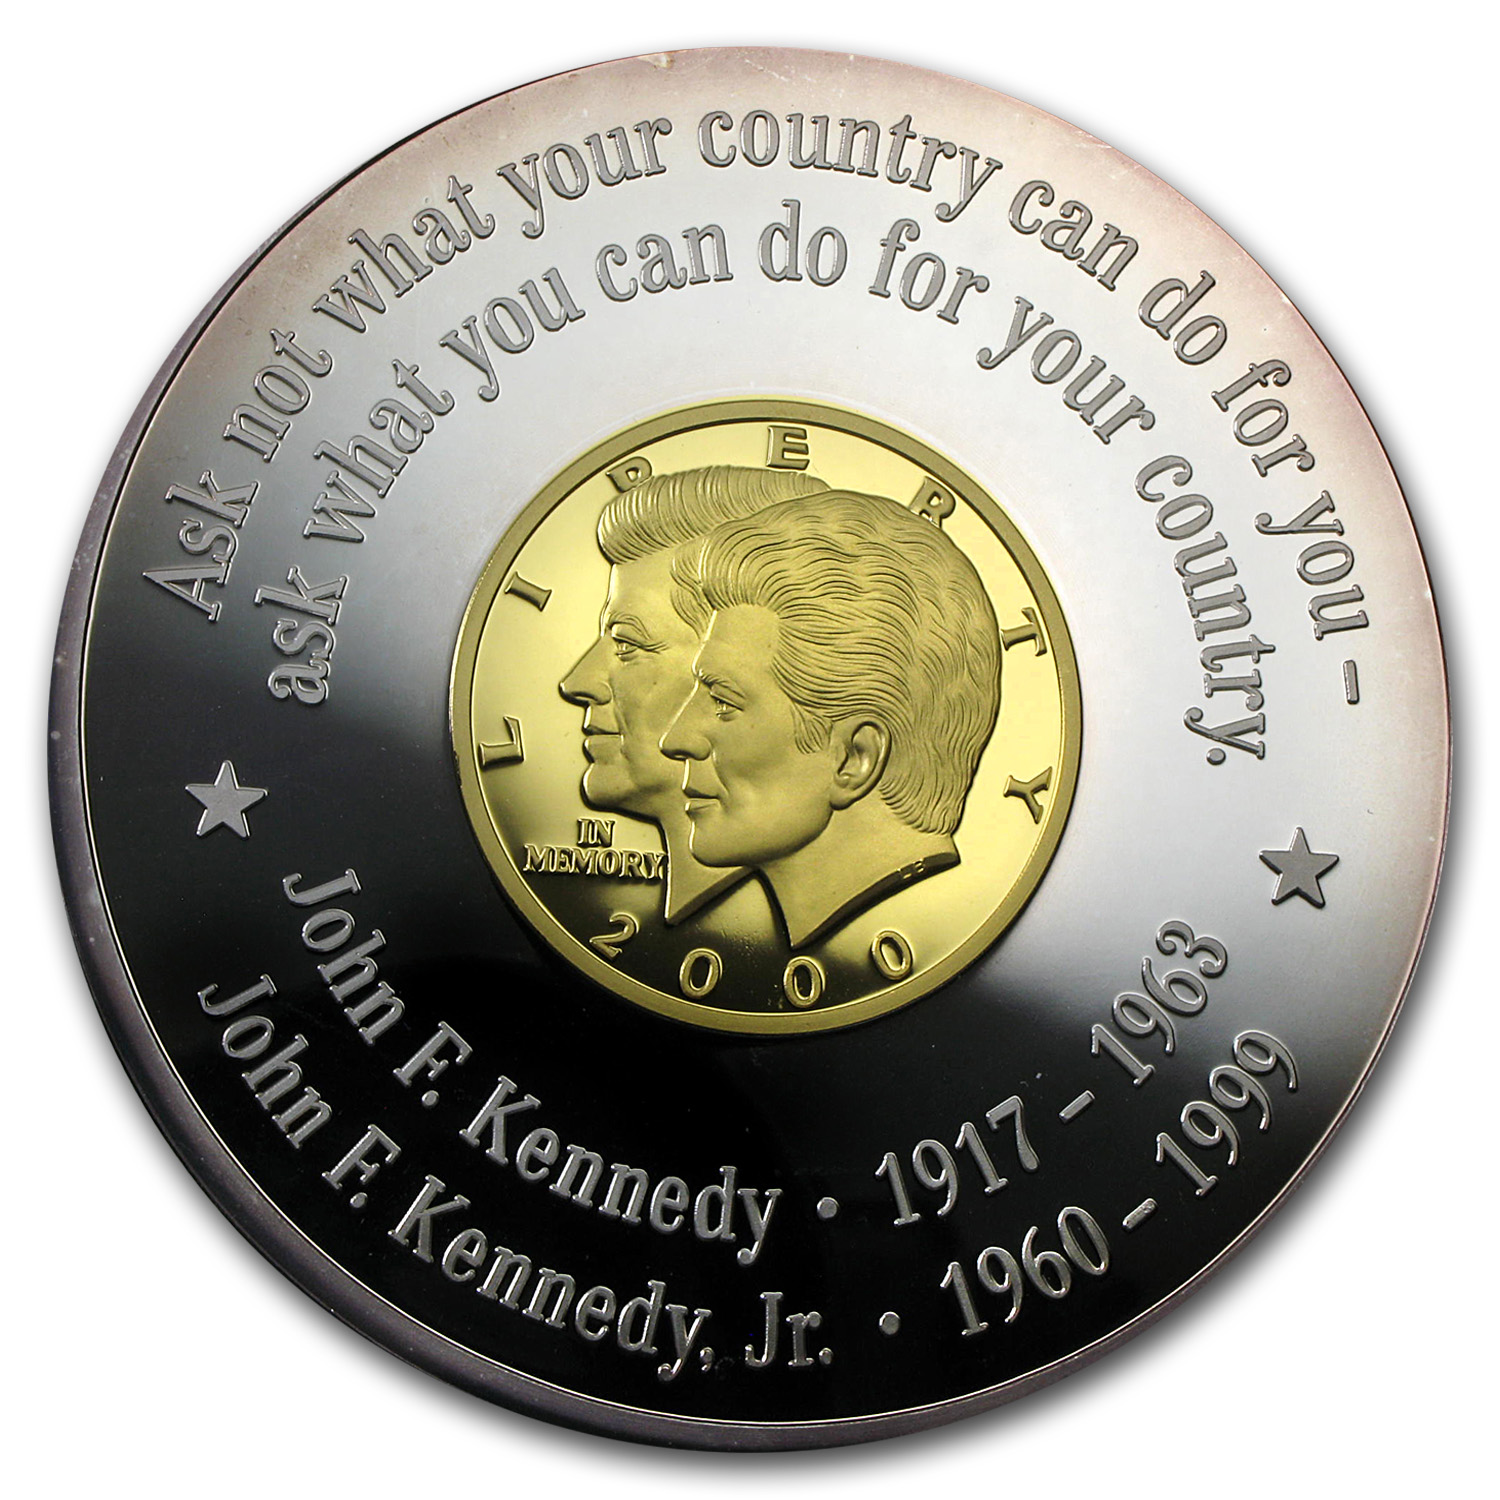 Liberia 1999 500 Dollars 1/2 oz Gold/Silver (Proof) JFK & JFK Jr